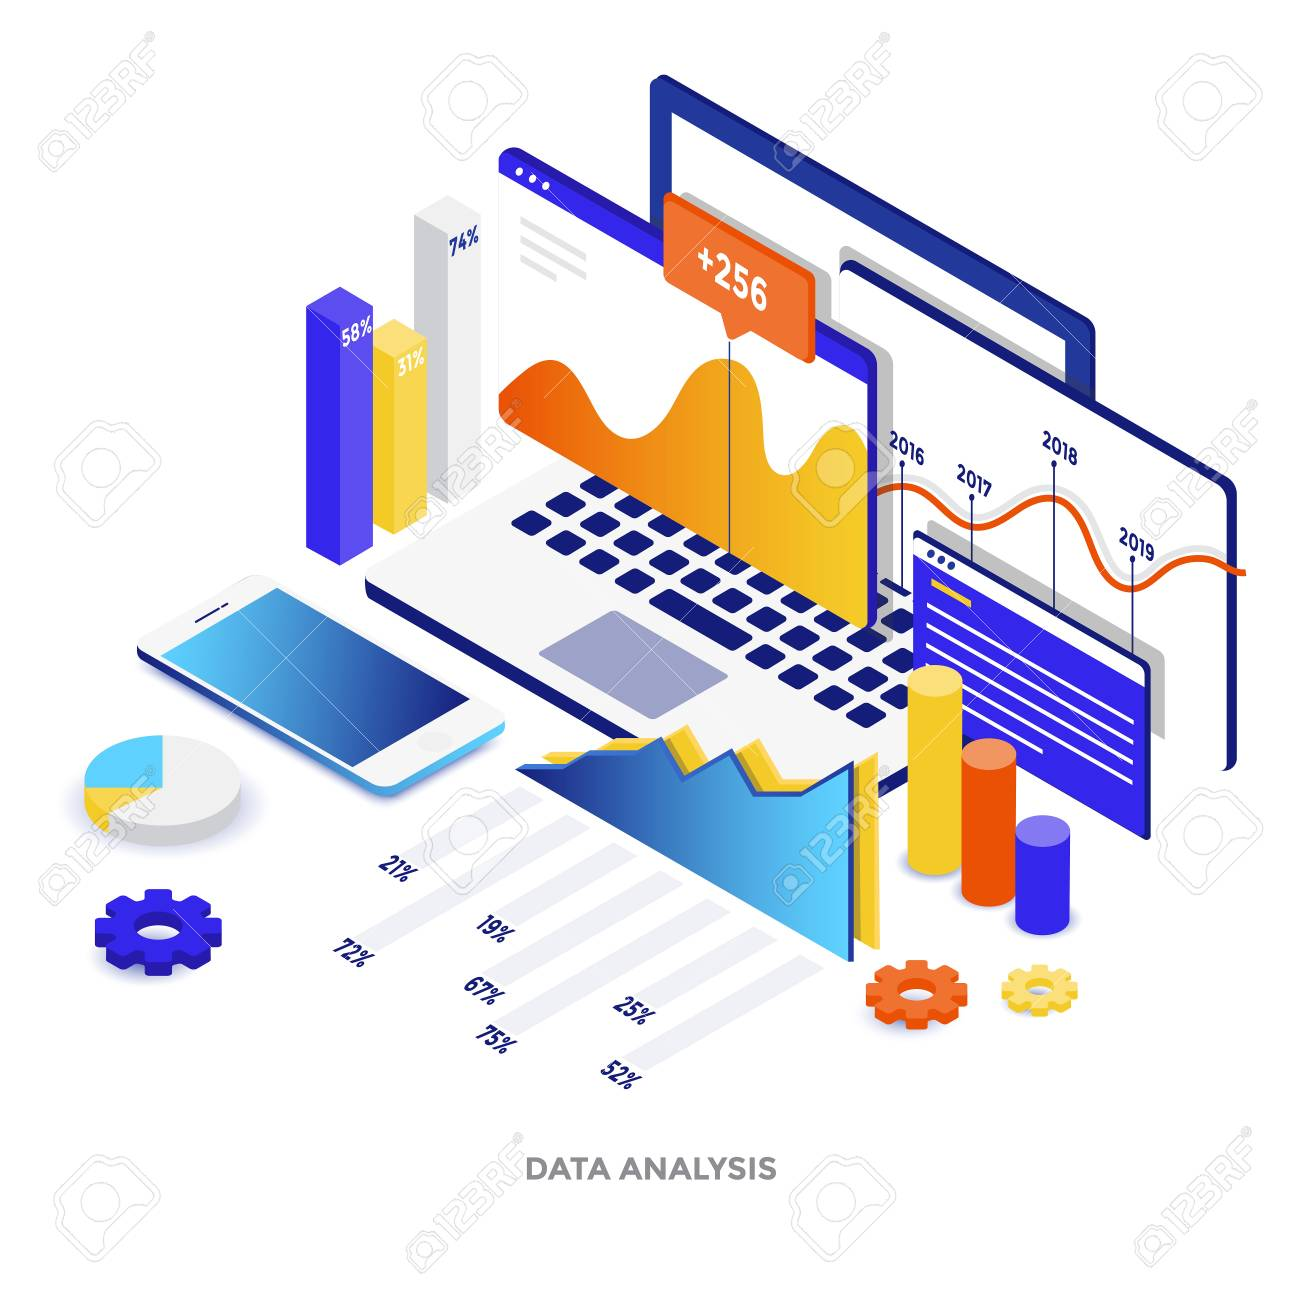 Modern flat design isometric illustration of Data Analysis. Can be used for website and mobile website or Landing page. Easy to edit and customize. Vector illustration - 101300654